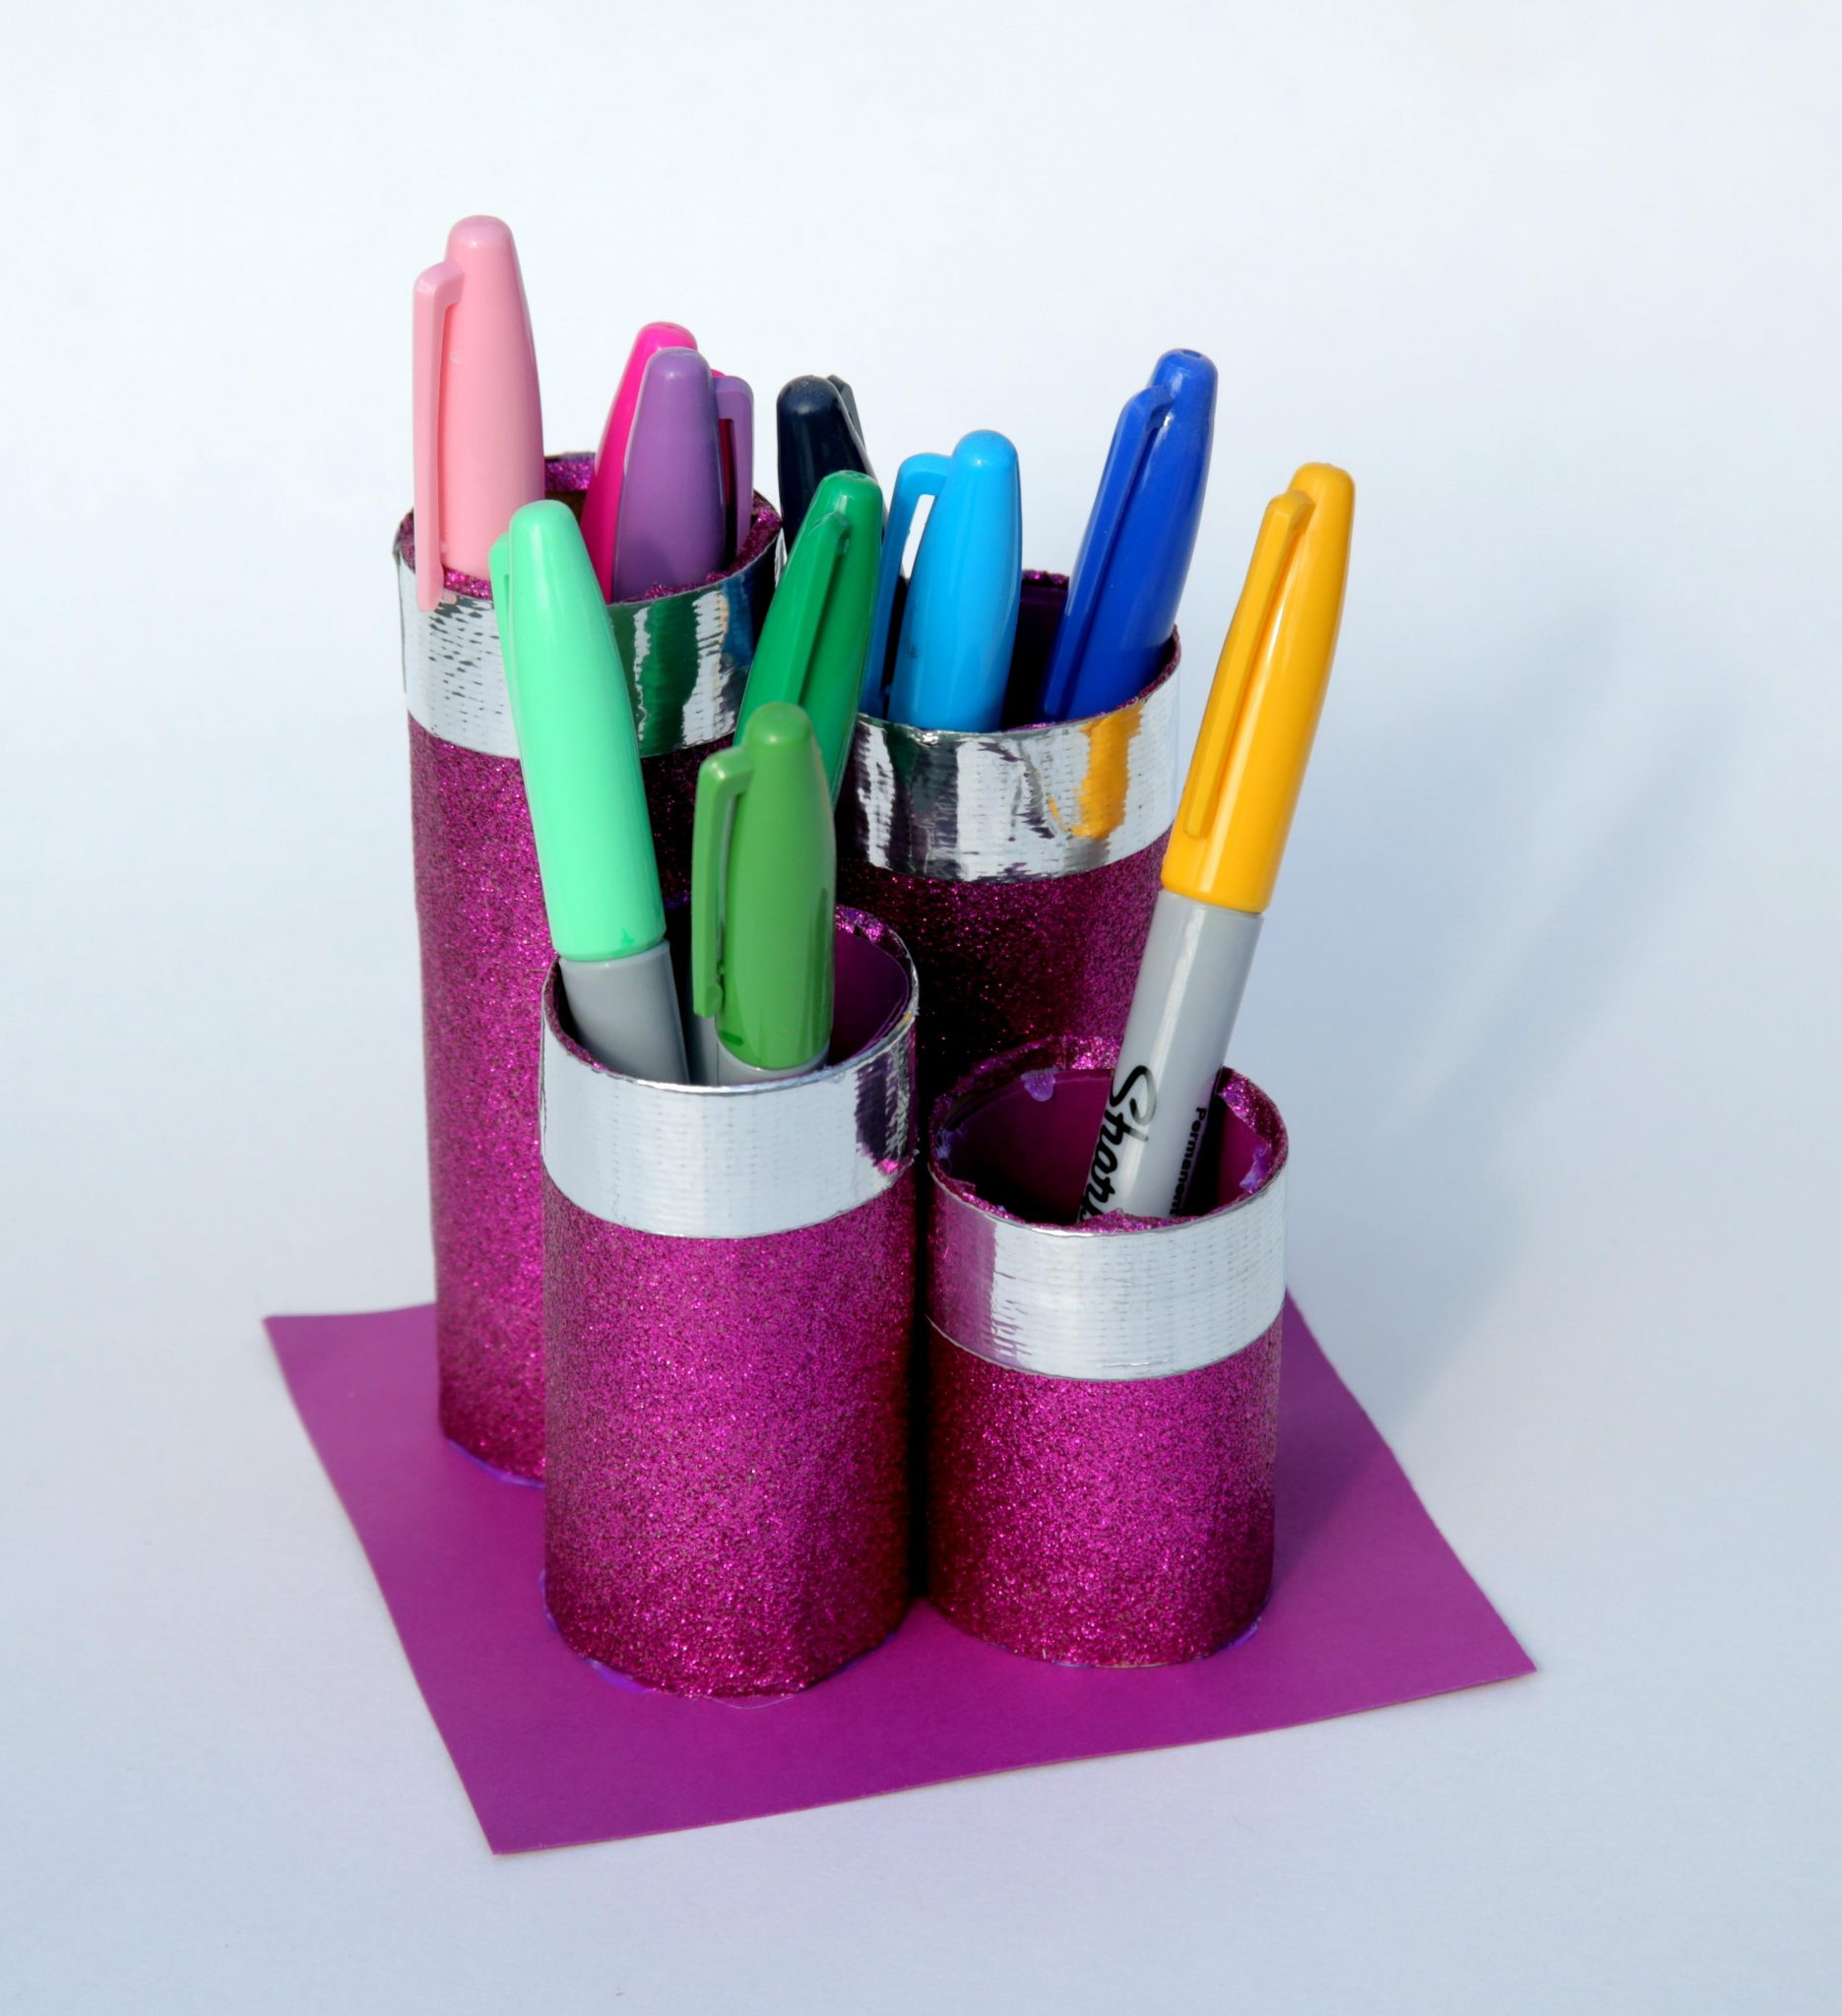 Tutorial: Make a Glittery Duck Tape Pen Organizer (from Recyclables!)